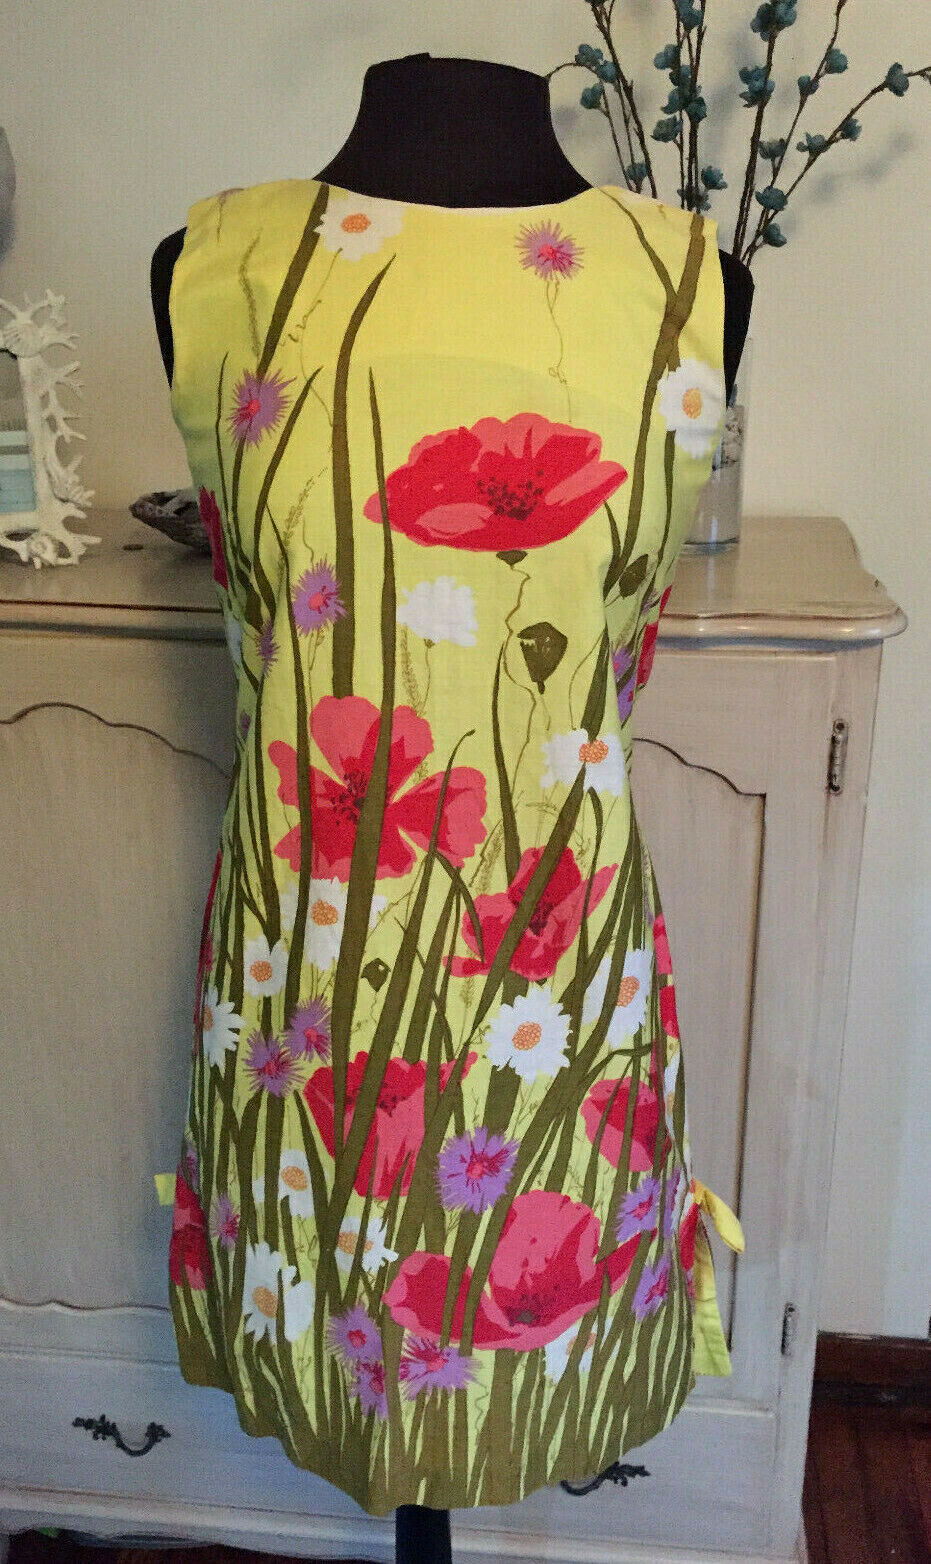 CHARLOTTA BY GLAZIER BEAUTIFUL YELLOW DRESS SMALL SMALL SMALL 5195c7